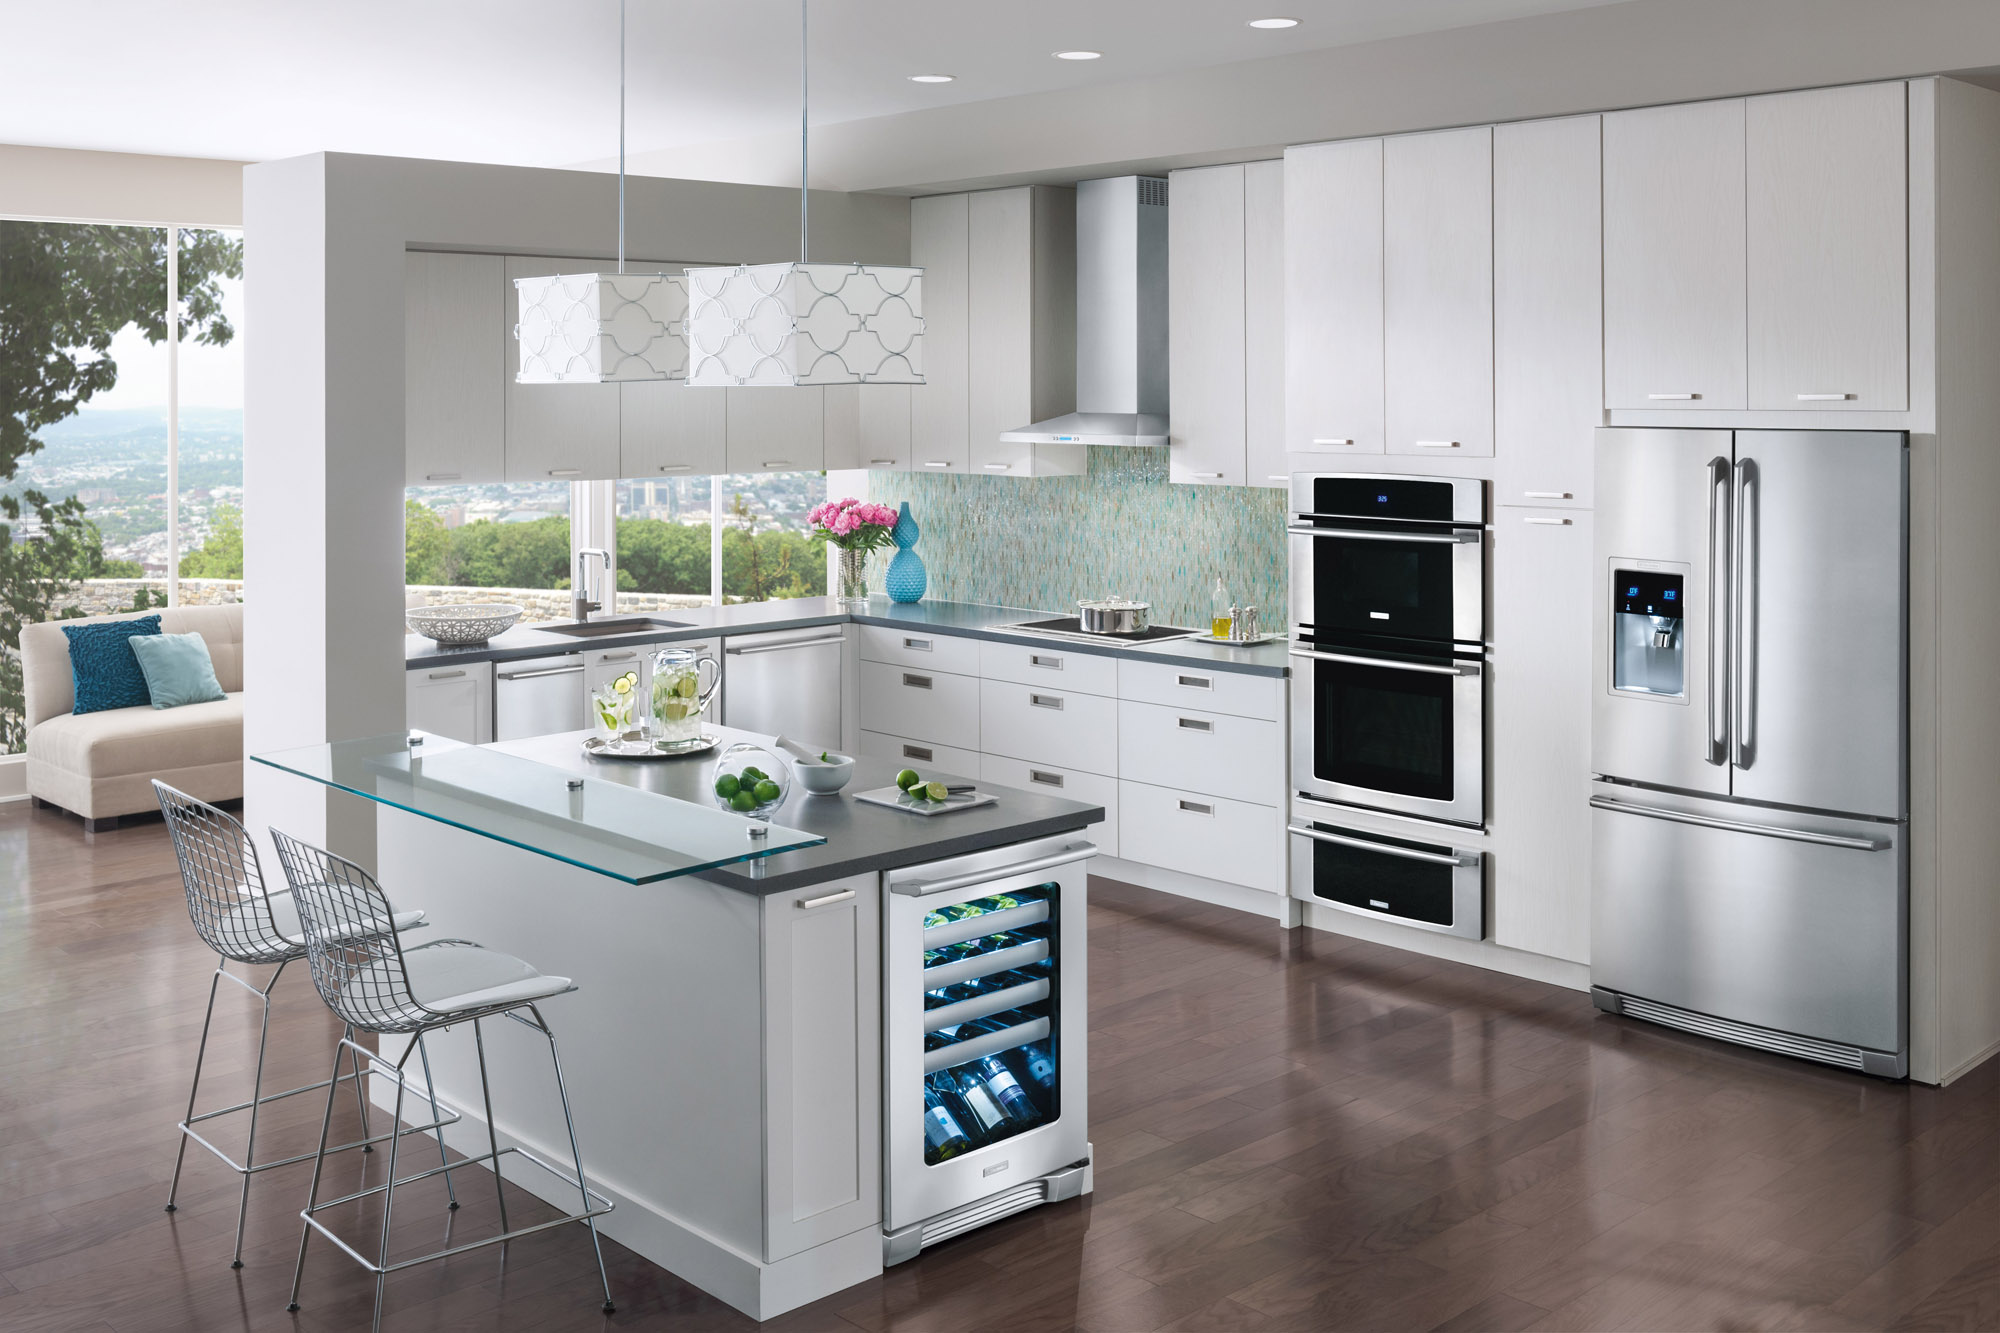 Kitchens that are on Trend, yet Timeless